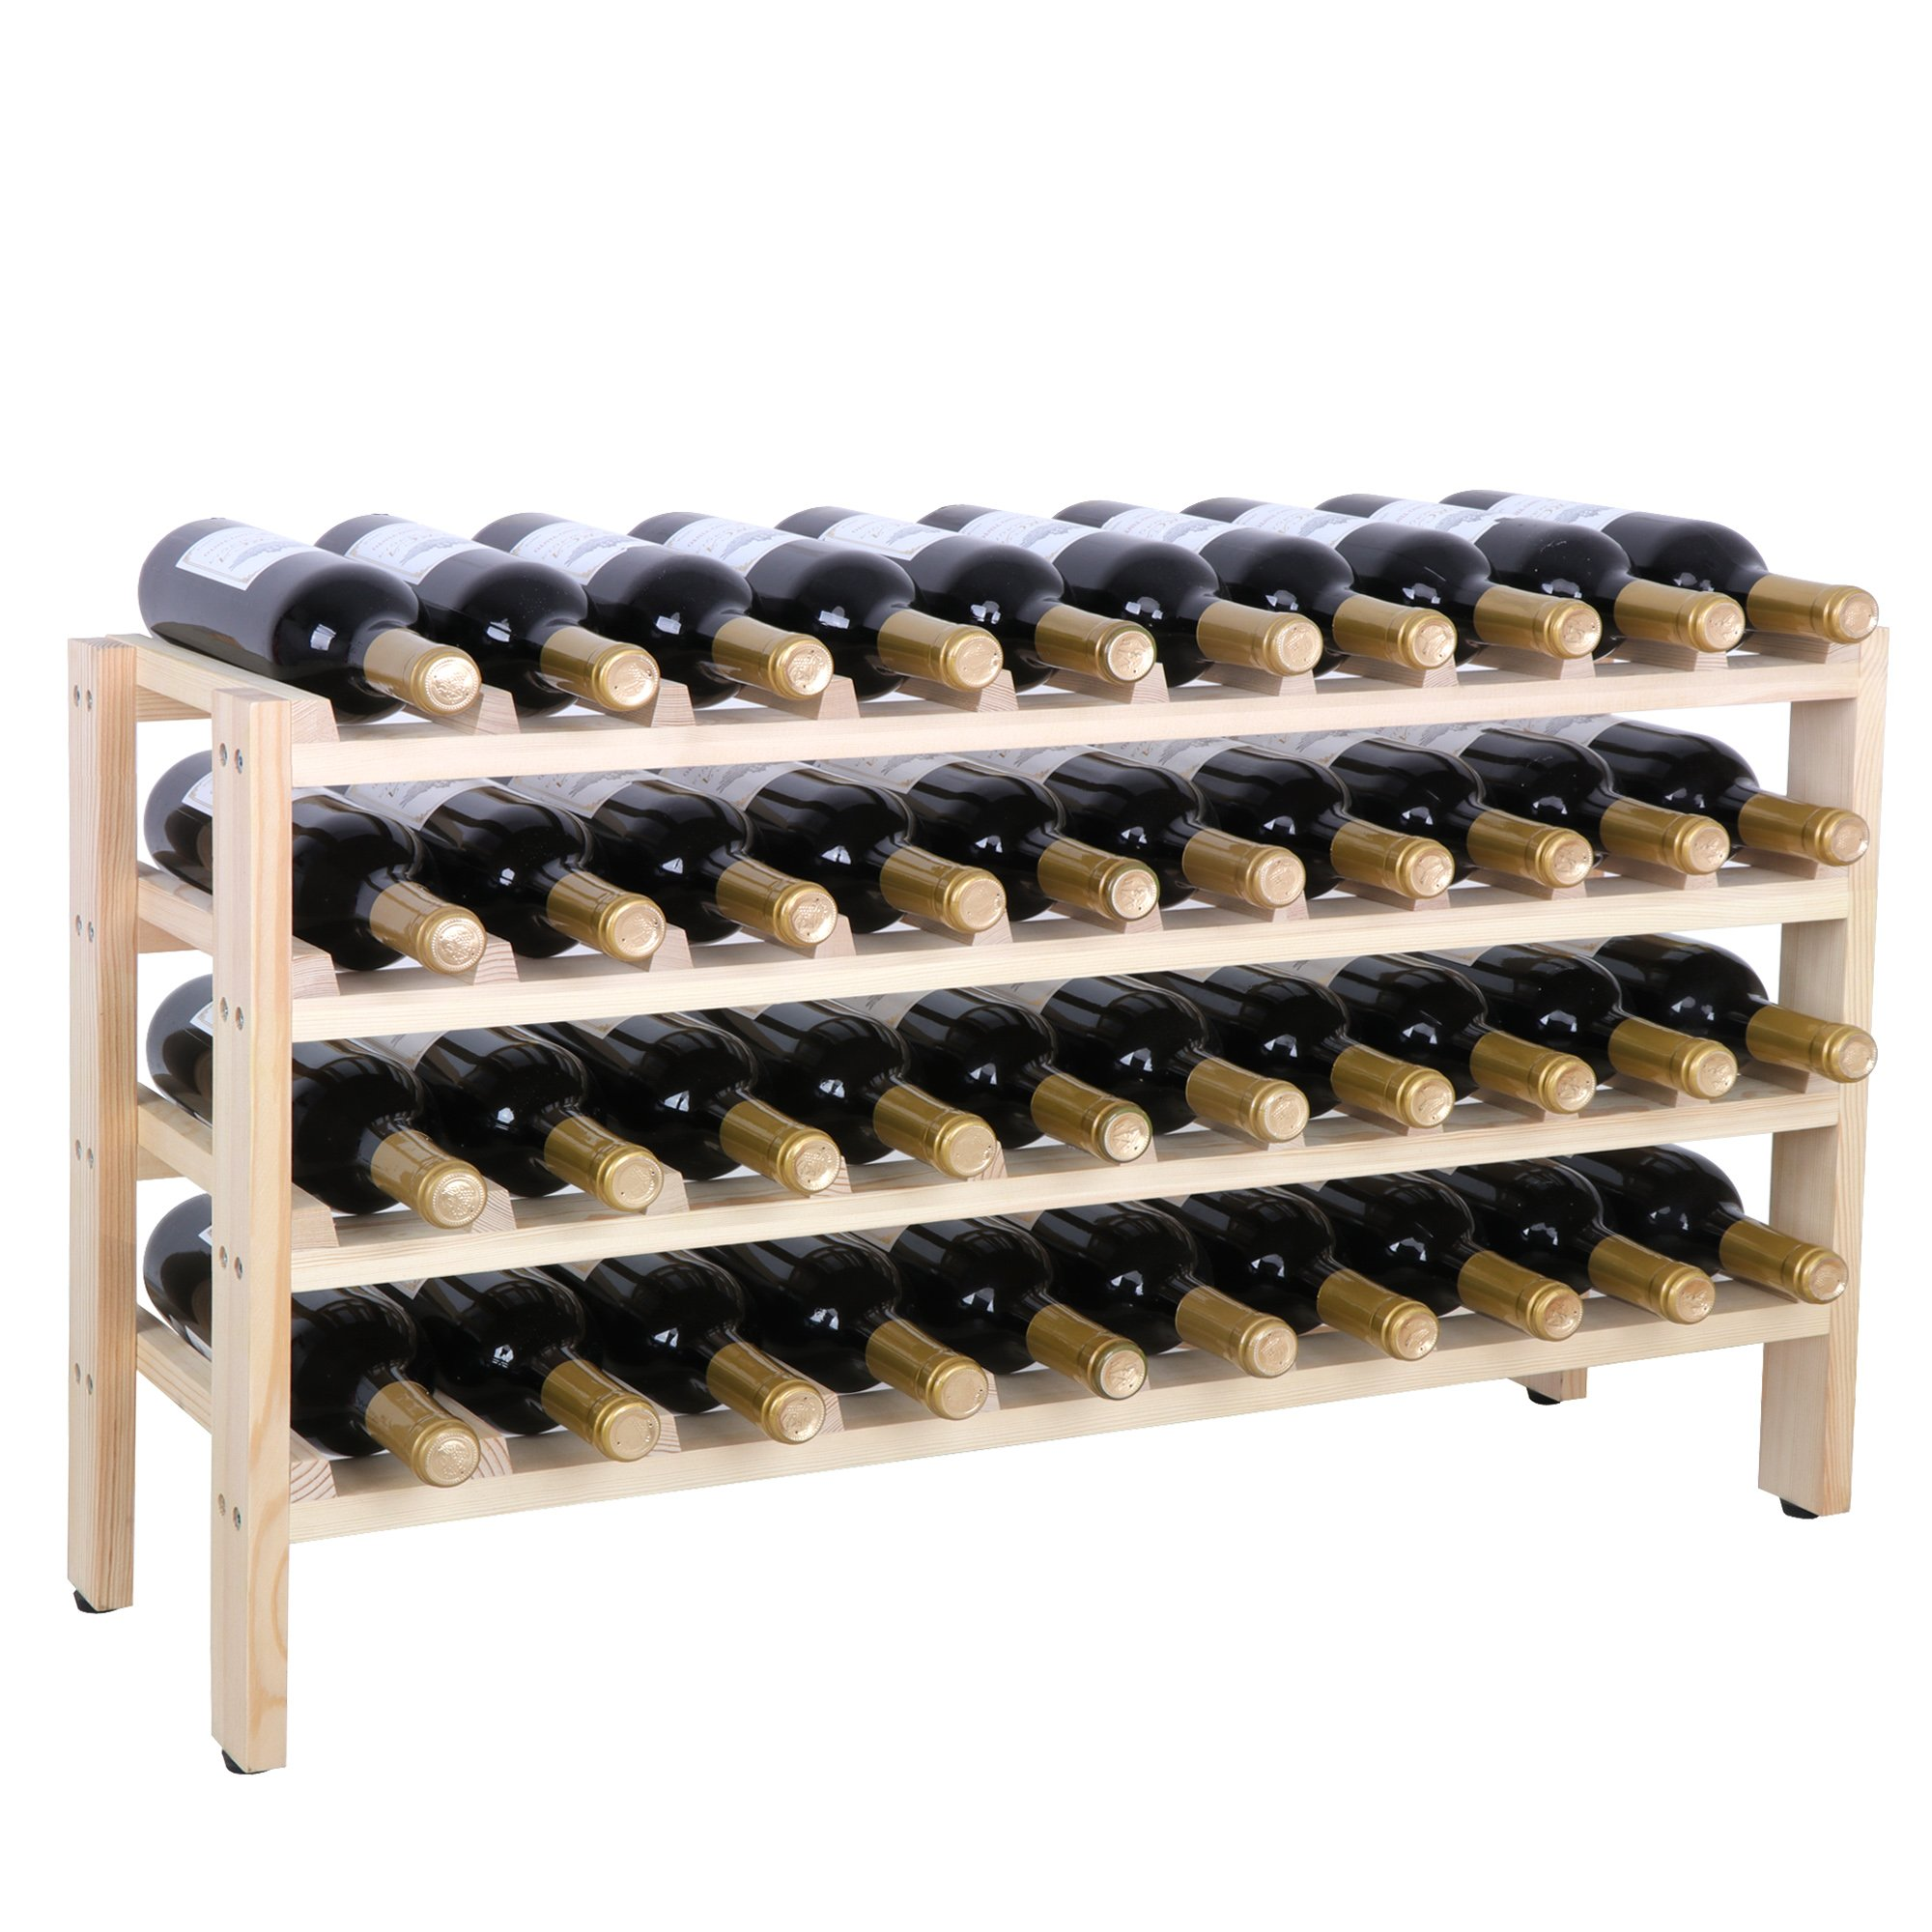 Smartxchoices 40 Bottle Wood Stackable Modular Wine Rack Wine Storage Rack Free Standing Floor Solid Wood Wine Holder Display Shelves, Screws Fixed Wobble-Free (40 Bottle)